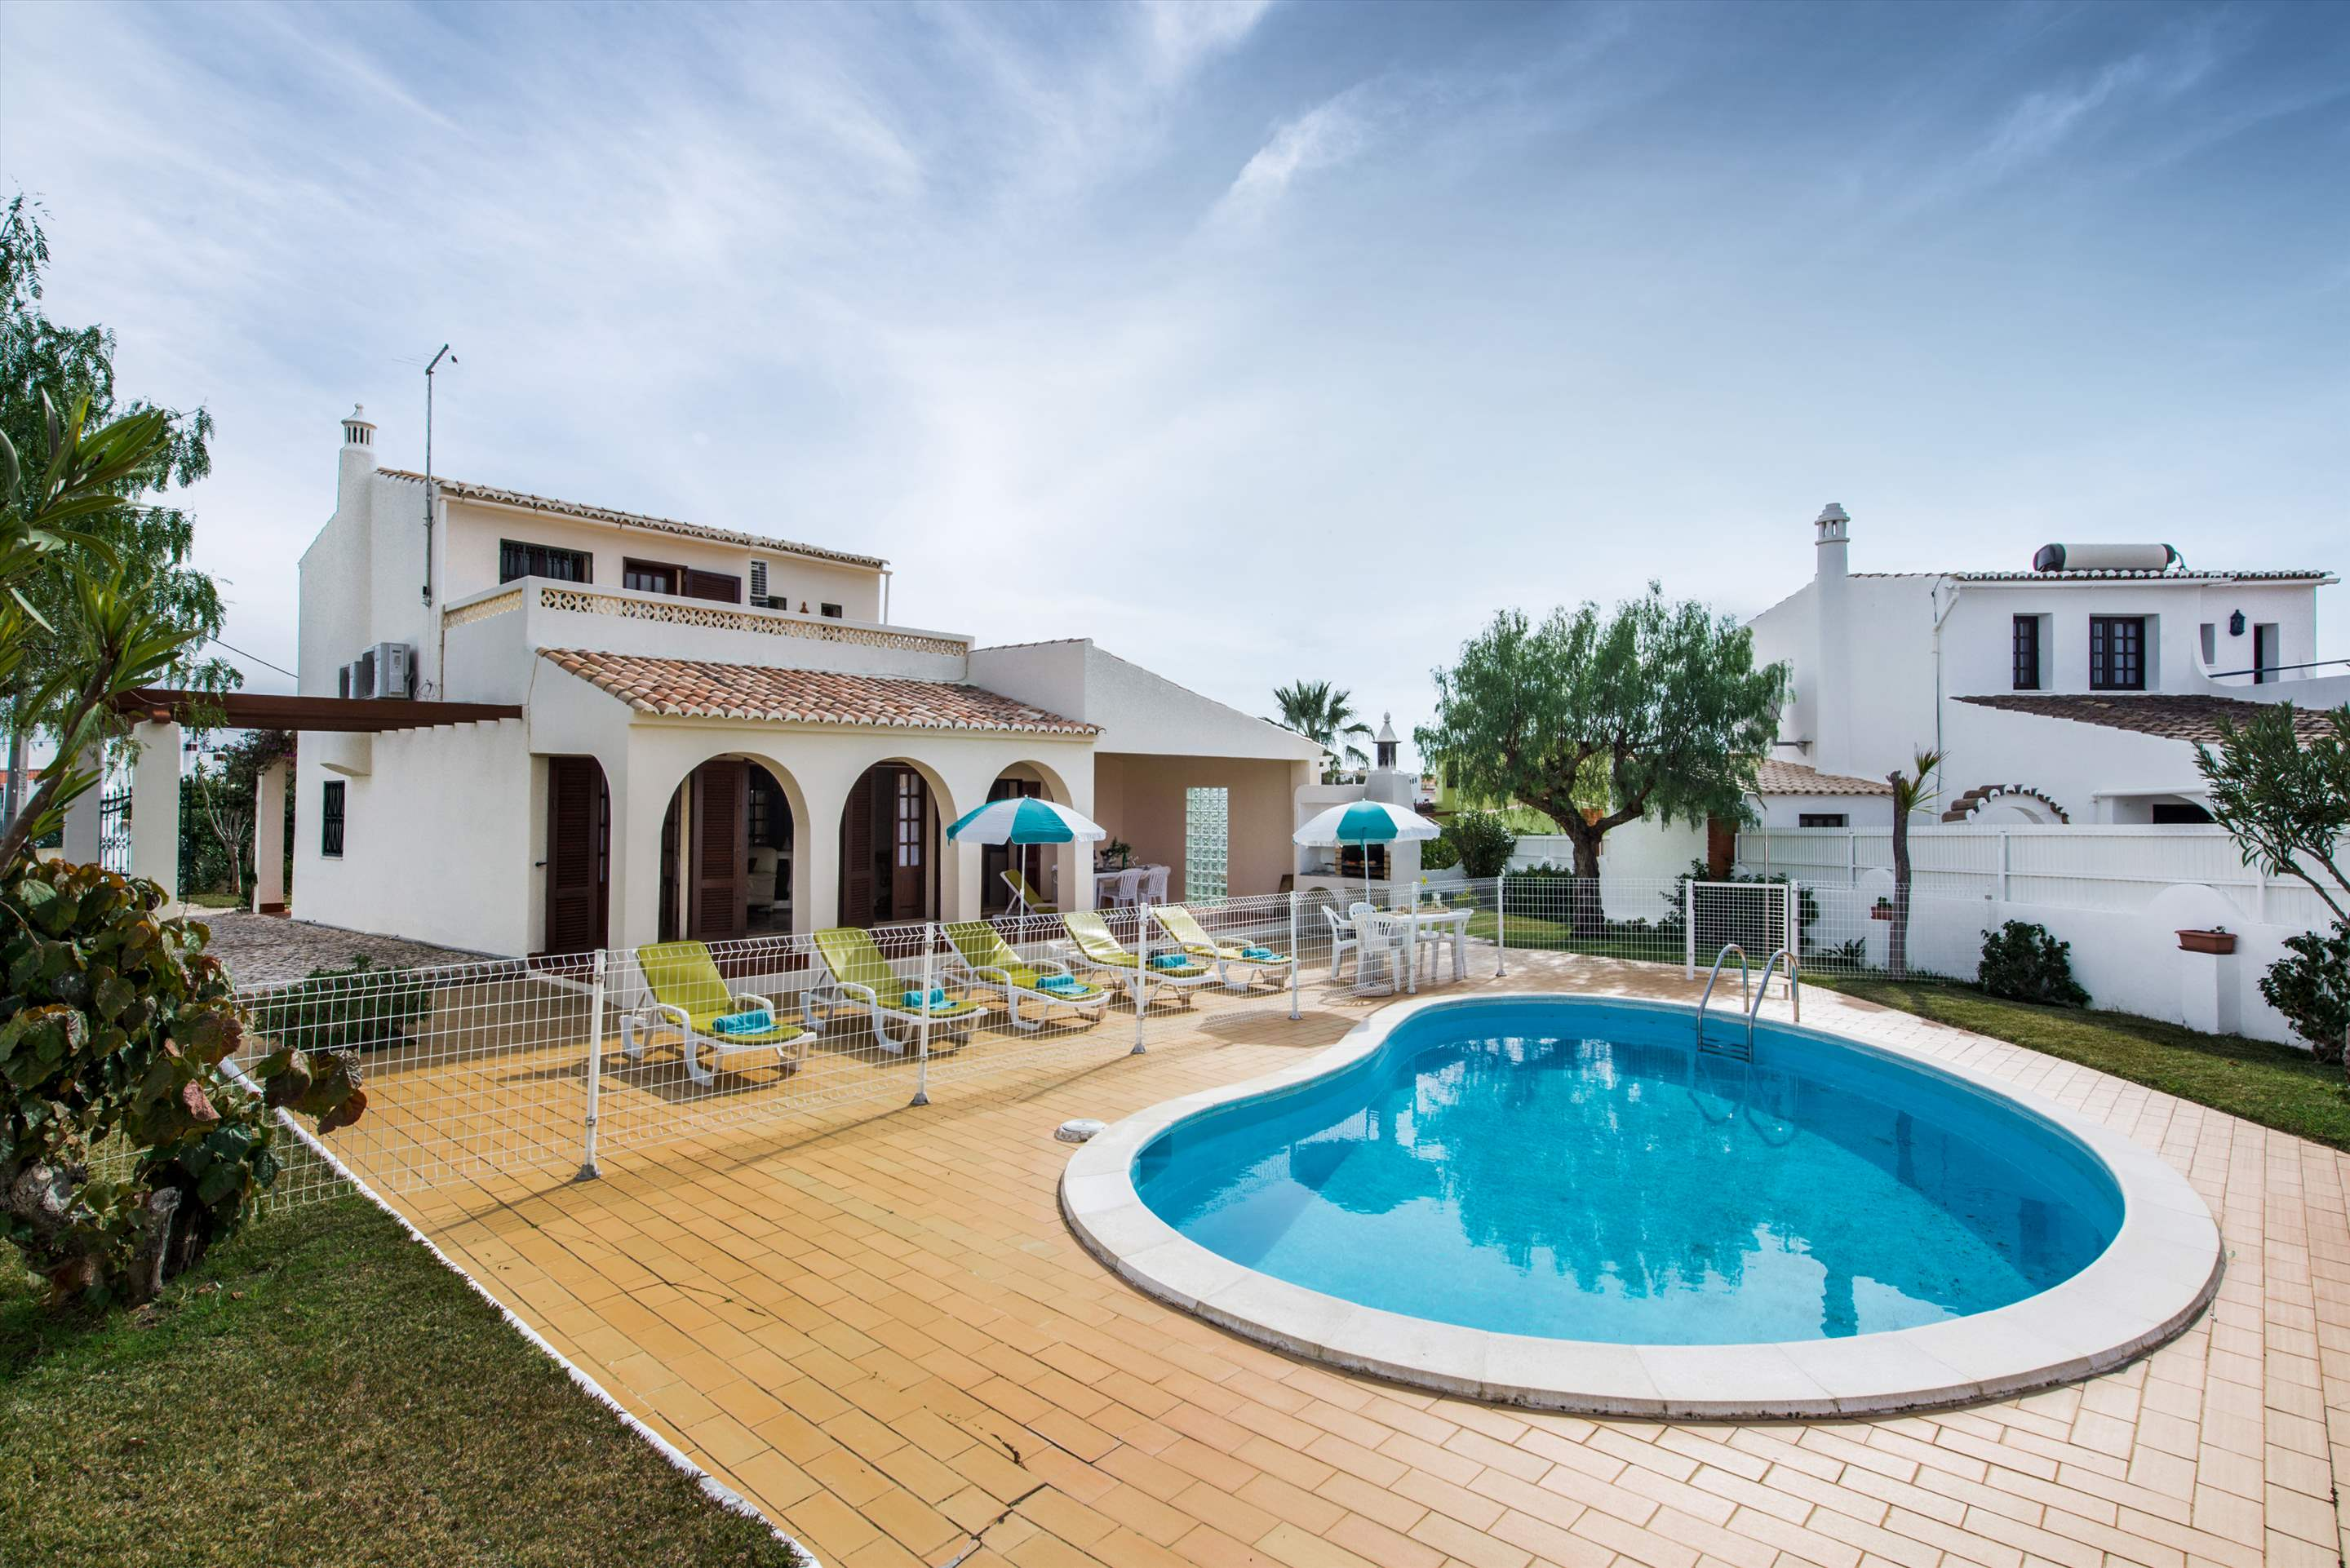 Casa Isabel, 5-6 persons rate, 3 bedroom villa in Gale, Vale da Parra and Guia, Algarve Photo #22